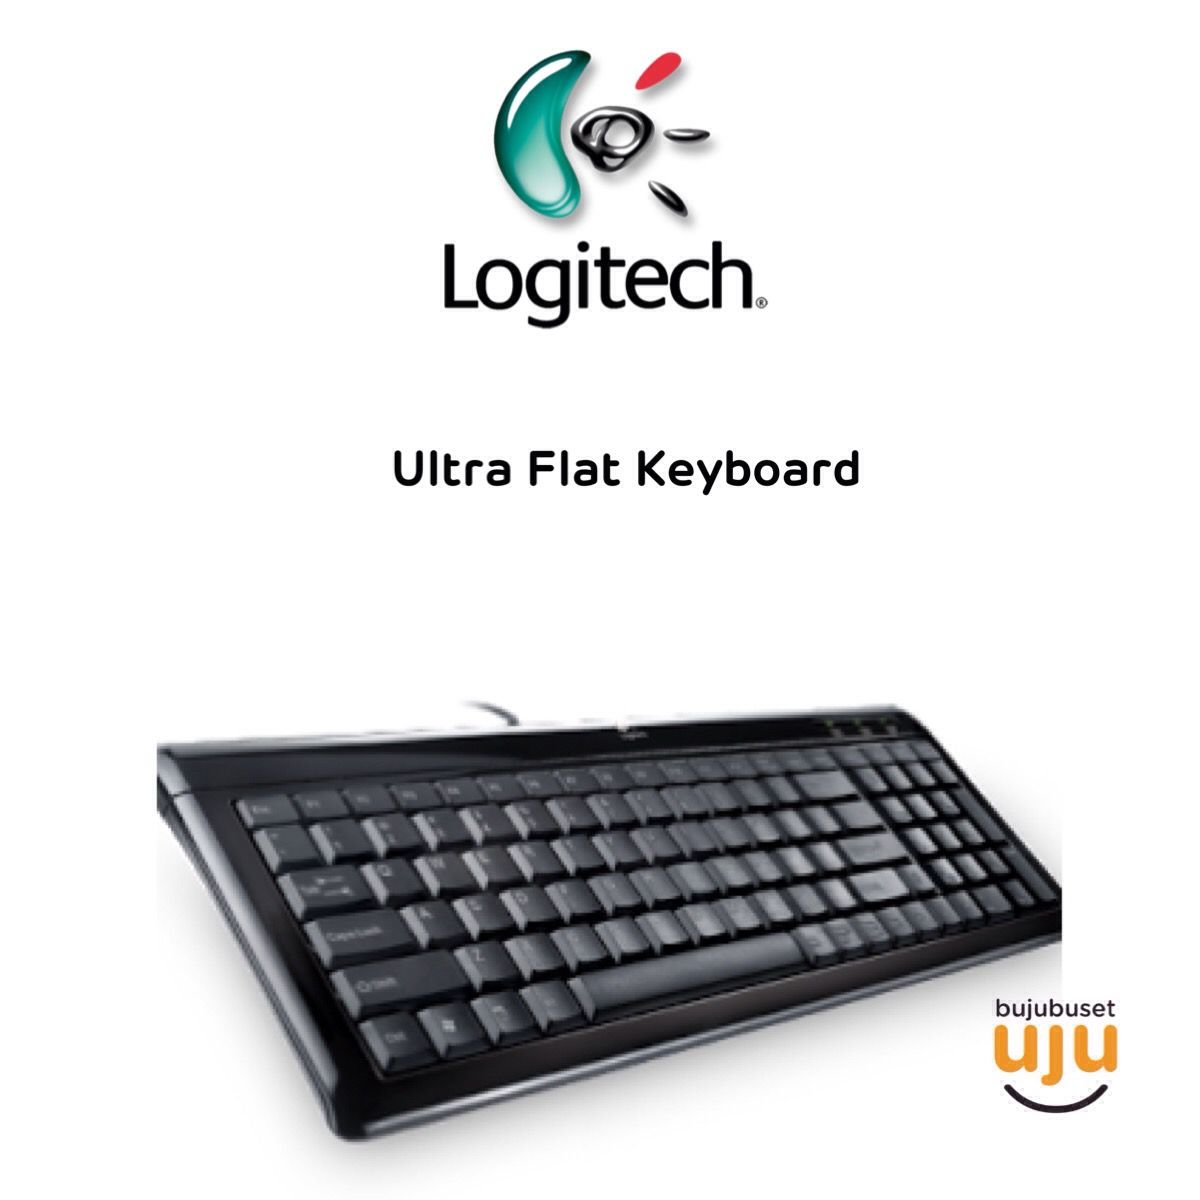 Logitech Ultra Flat Keyboard Usb Ps2 Idr 170000 K120